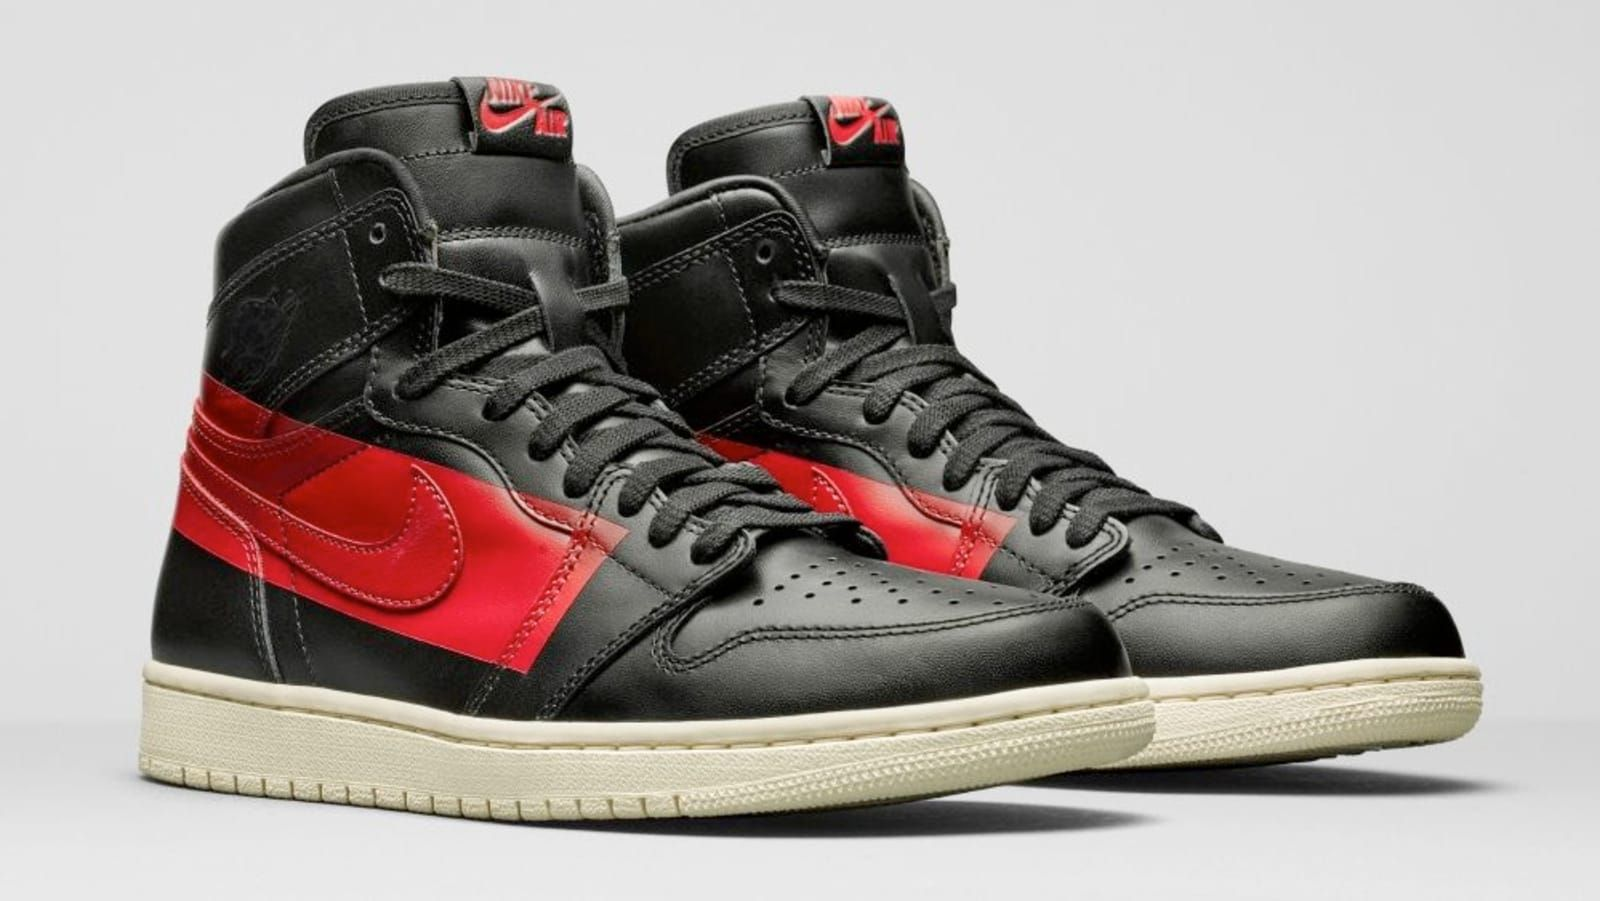 new concept de47f 376ee Air Jordan 1 High OG Defiant  Black Gym Red Muslin  Release Date   Sole  Collector